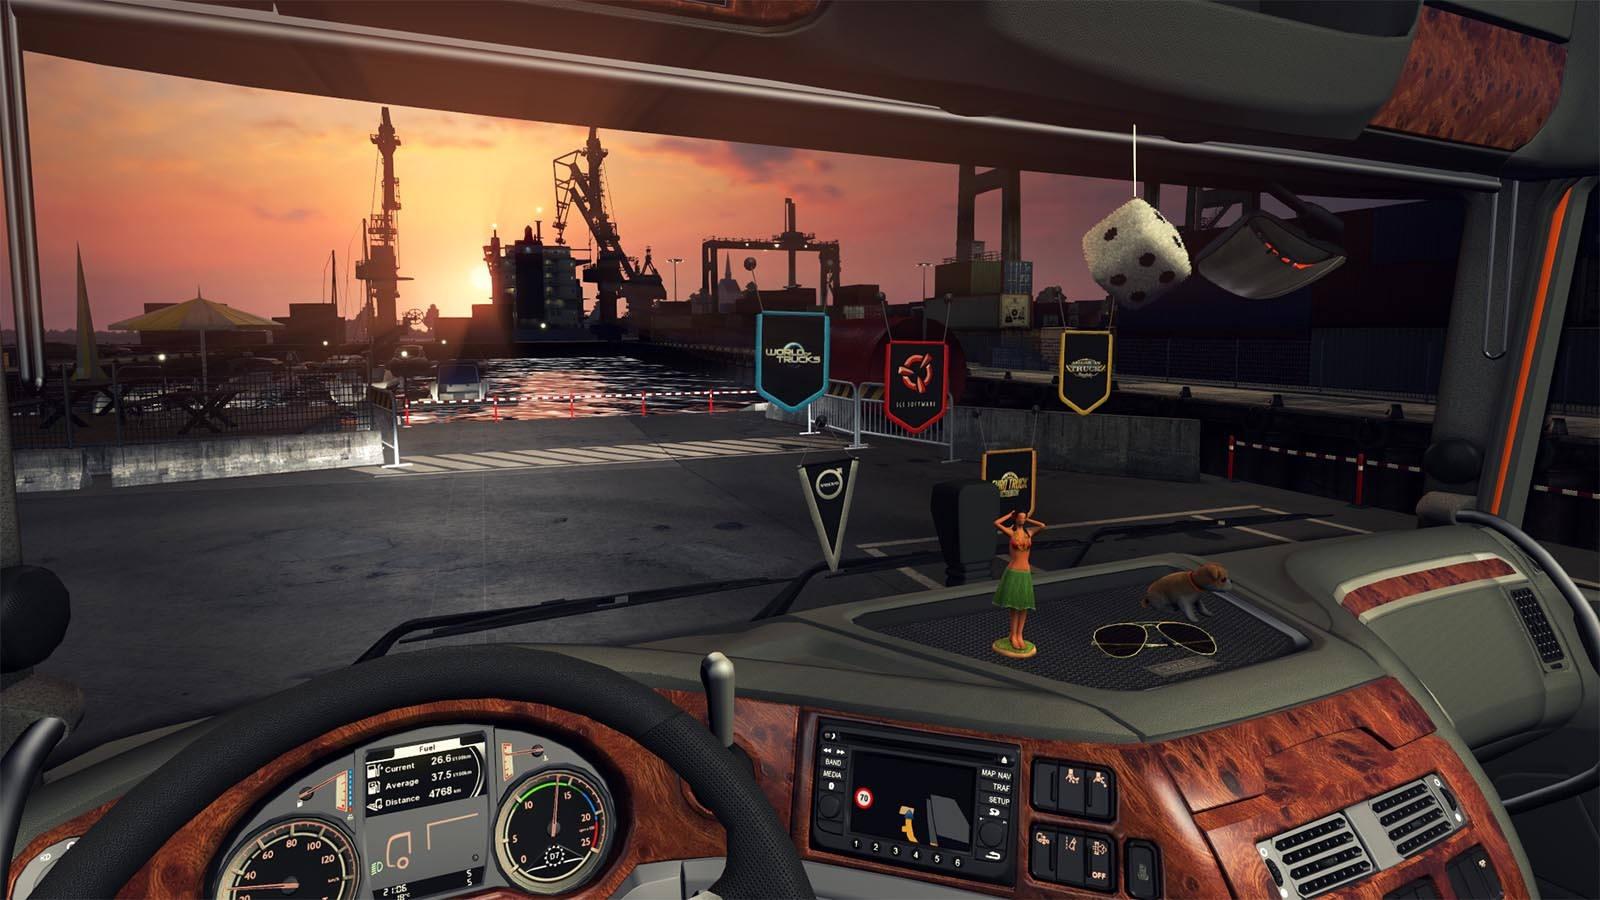 Euro Truck Simulator 2: Cargo Collection Bundle [Steam CD Key] for PC, Mac  and Linux - Buy now